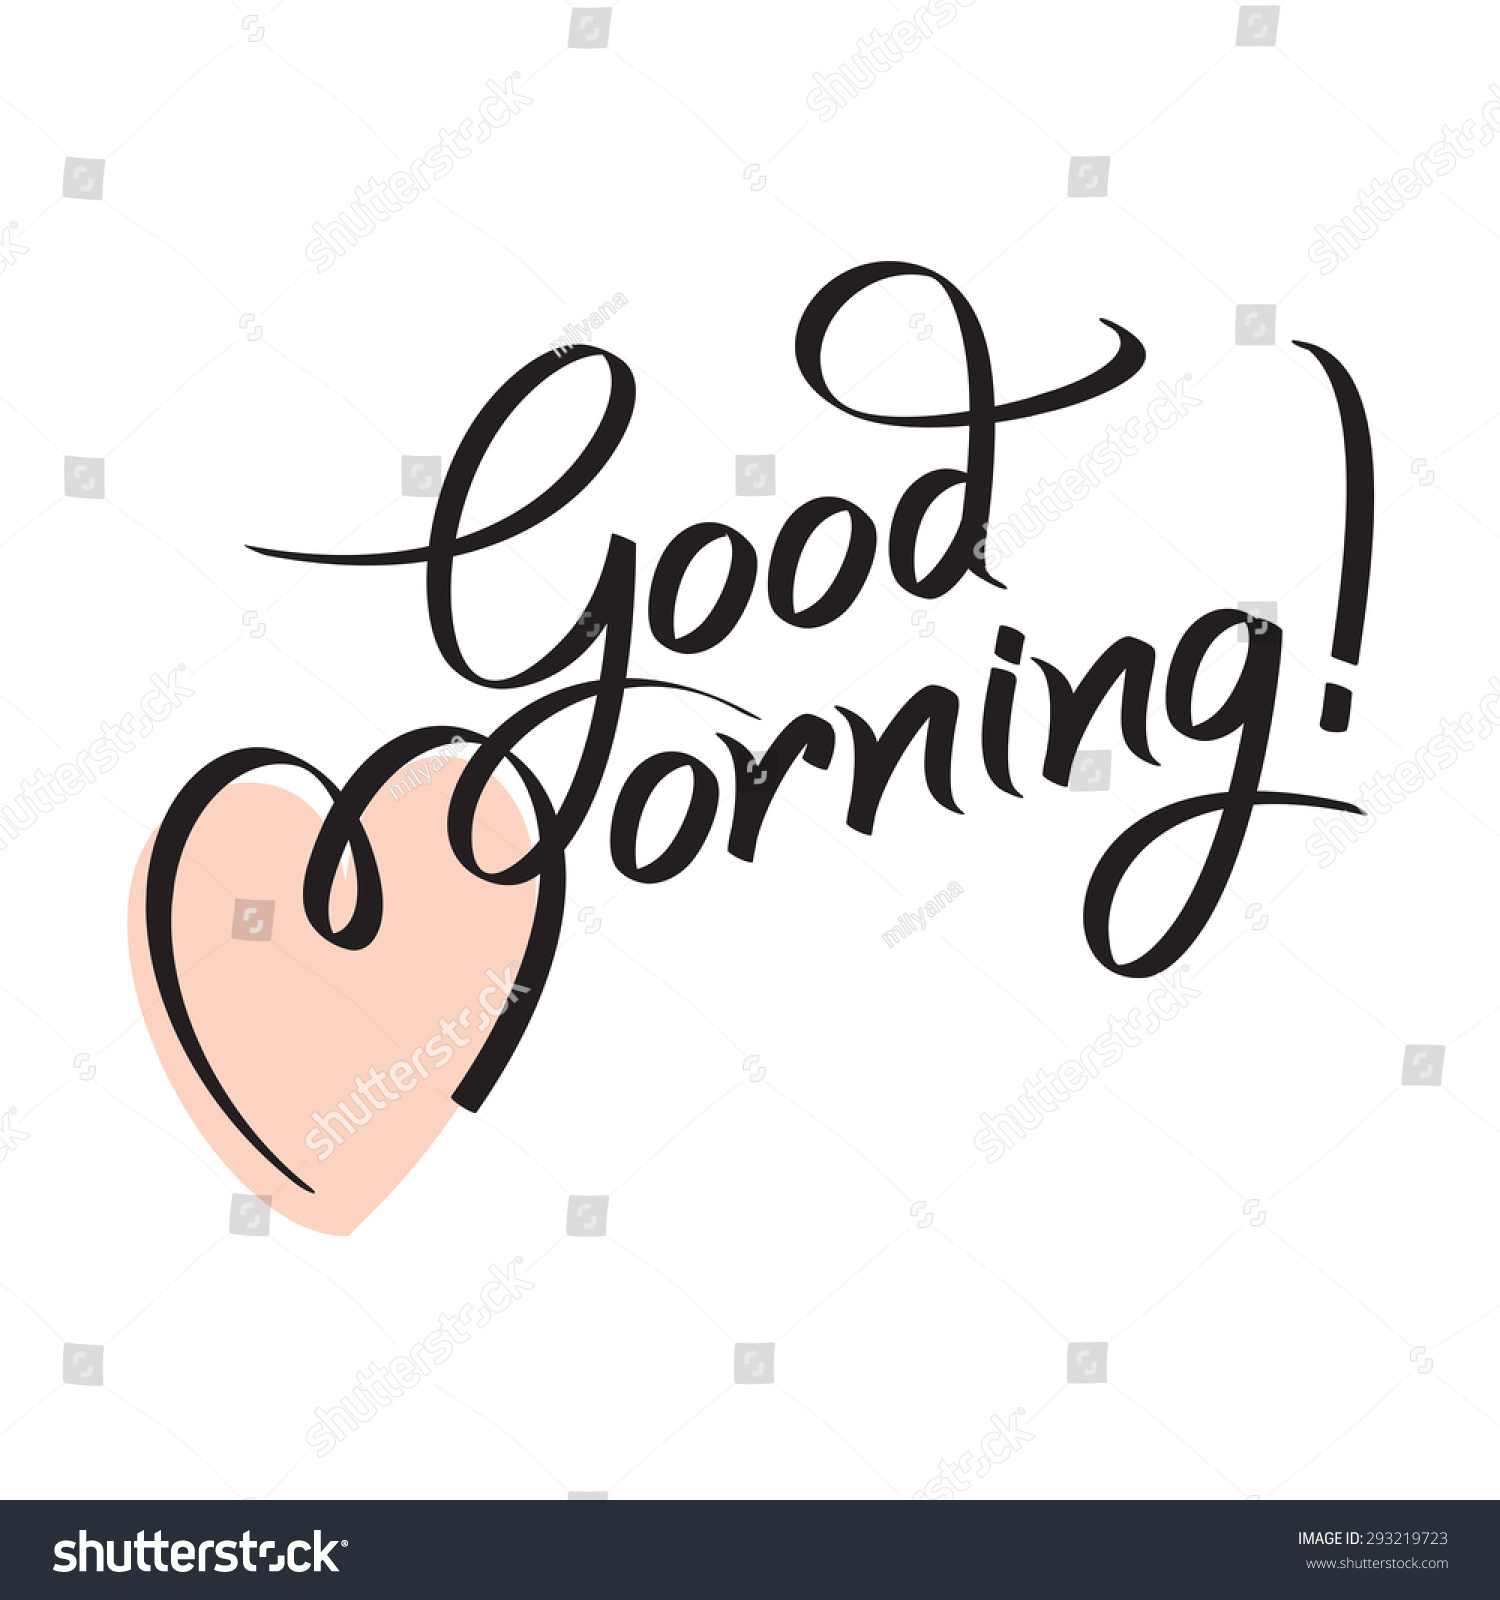 good morning hand lettering text handmade stock vector 2018 rh shutterstock com good morning logo images good morning colorado